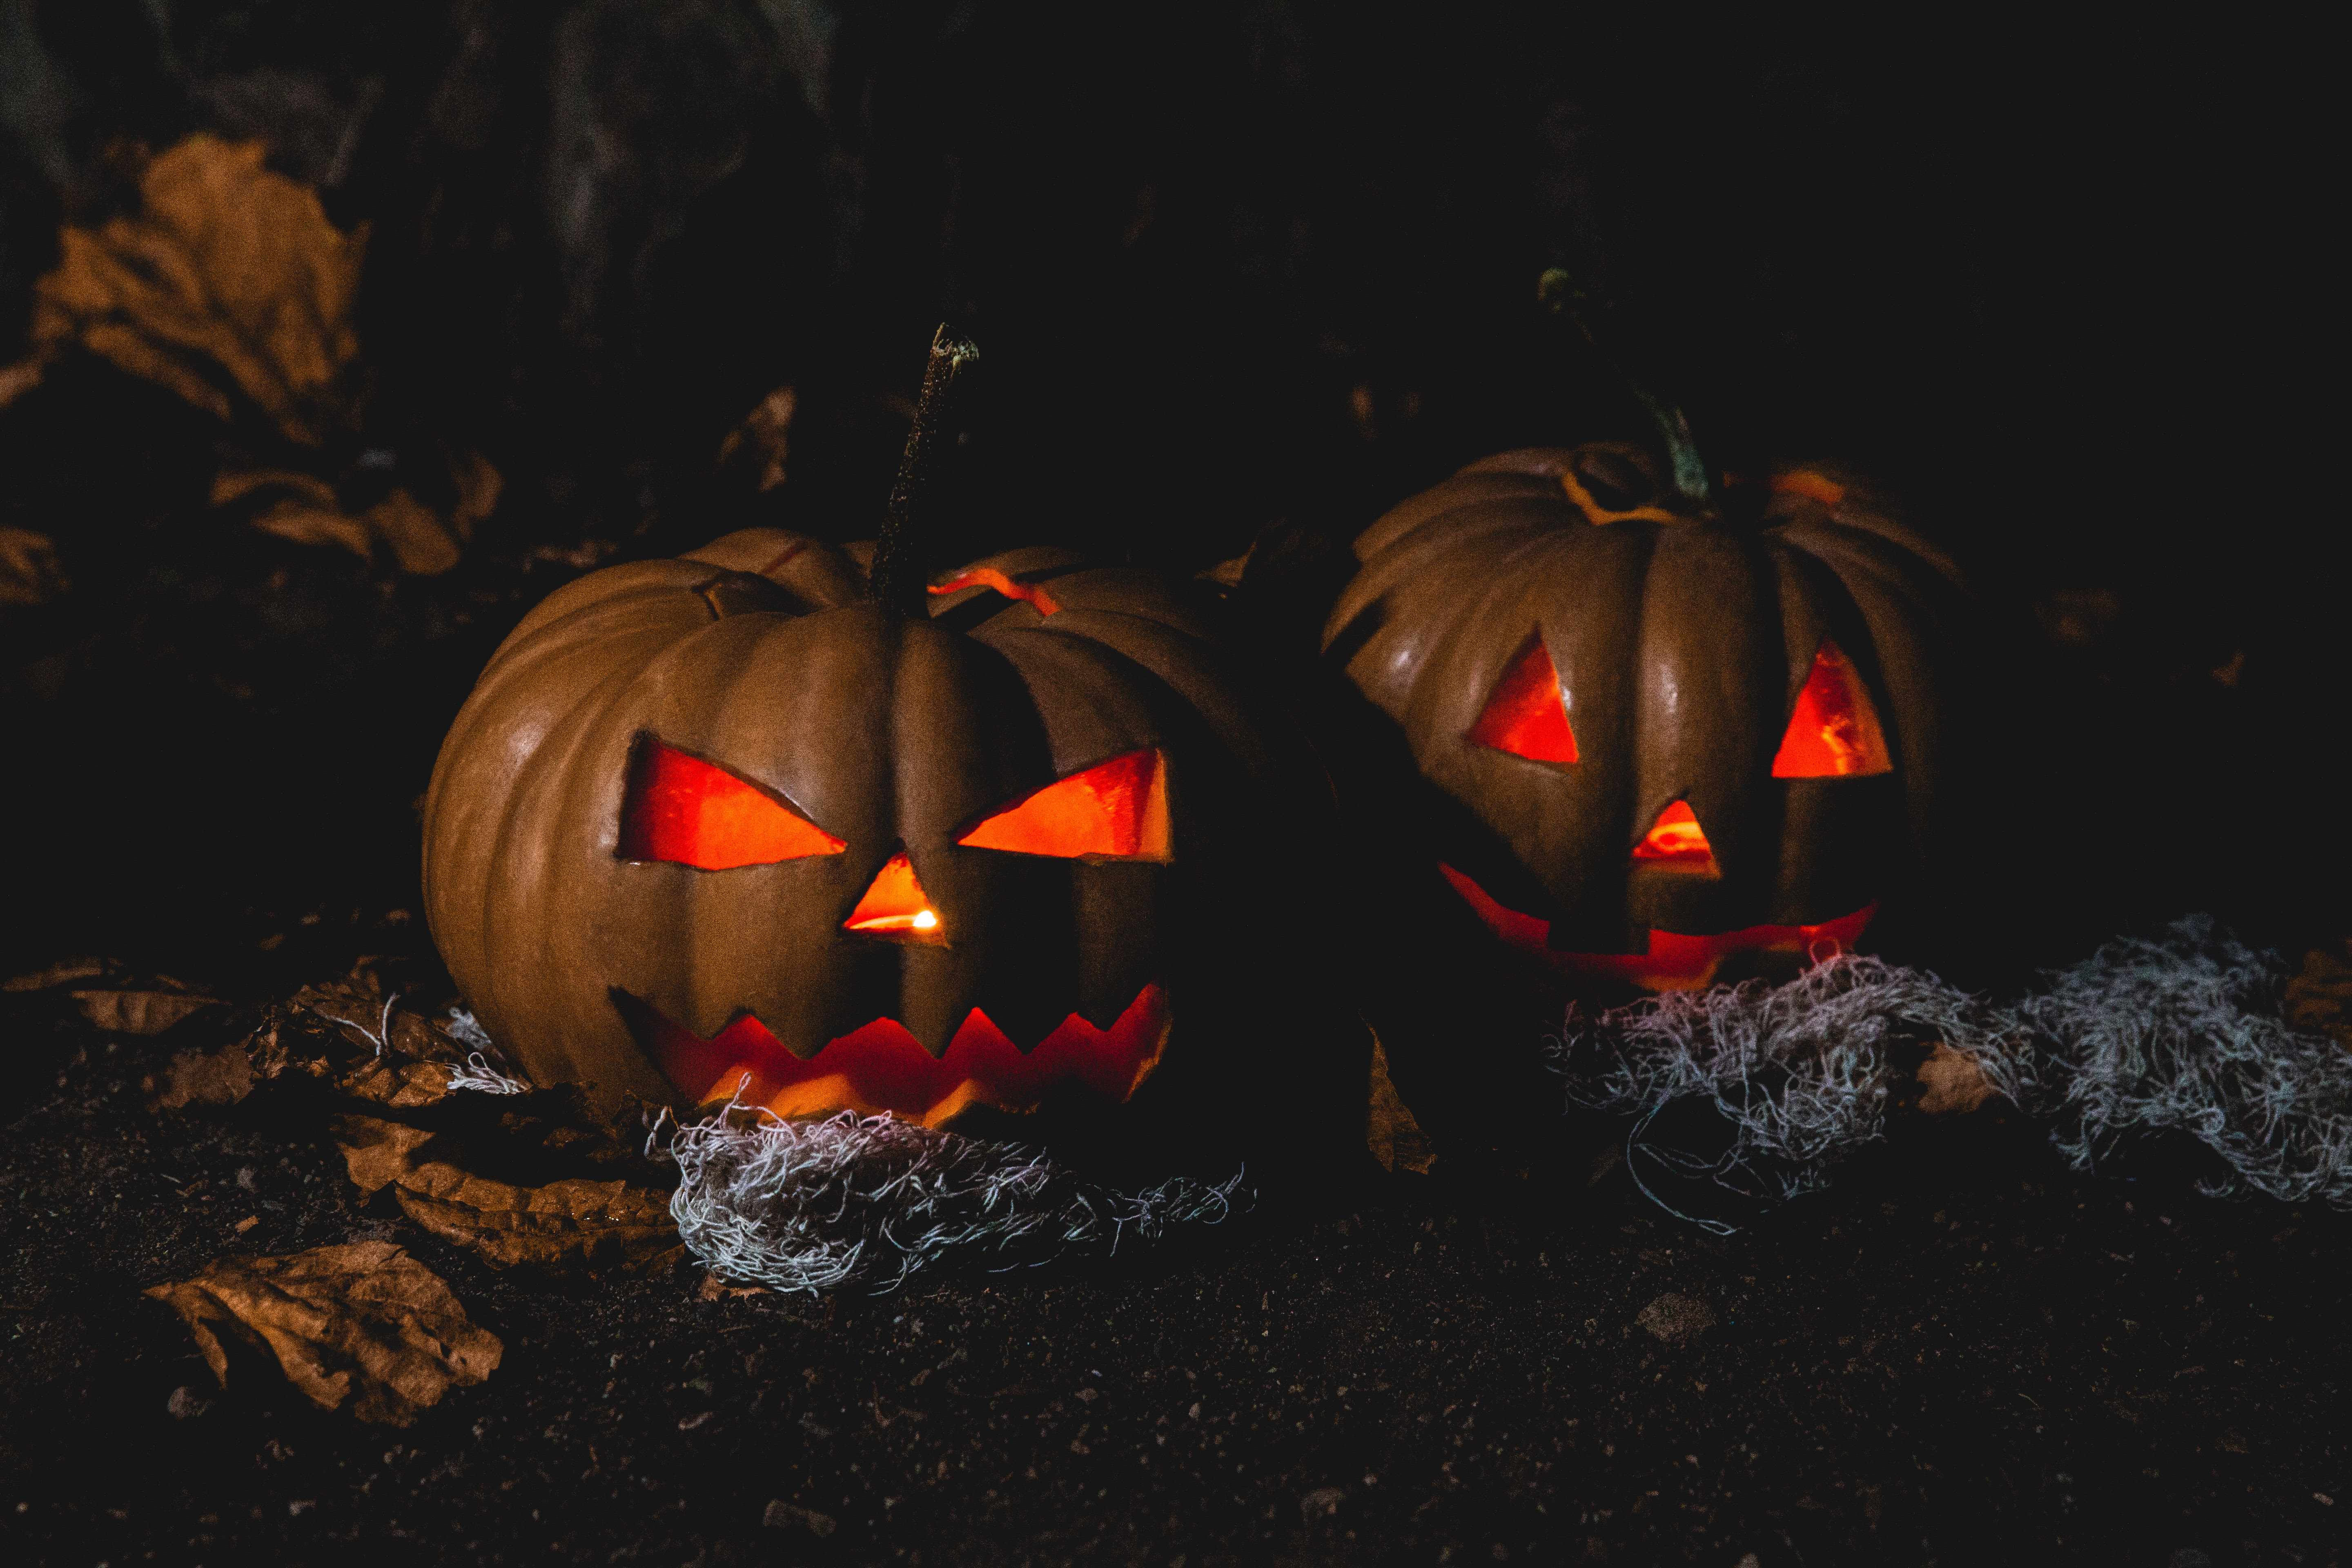 Scary Movie Inspiration: 6 Business Lesson Takeaways